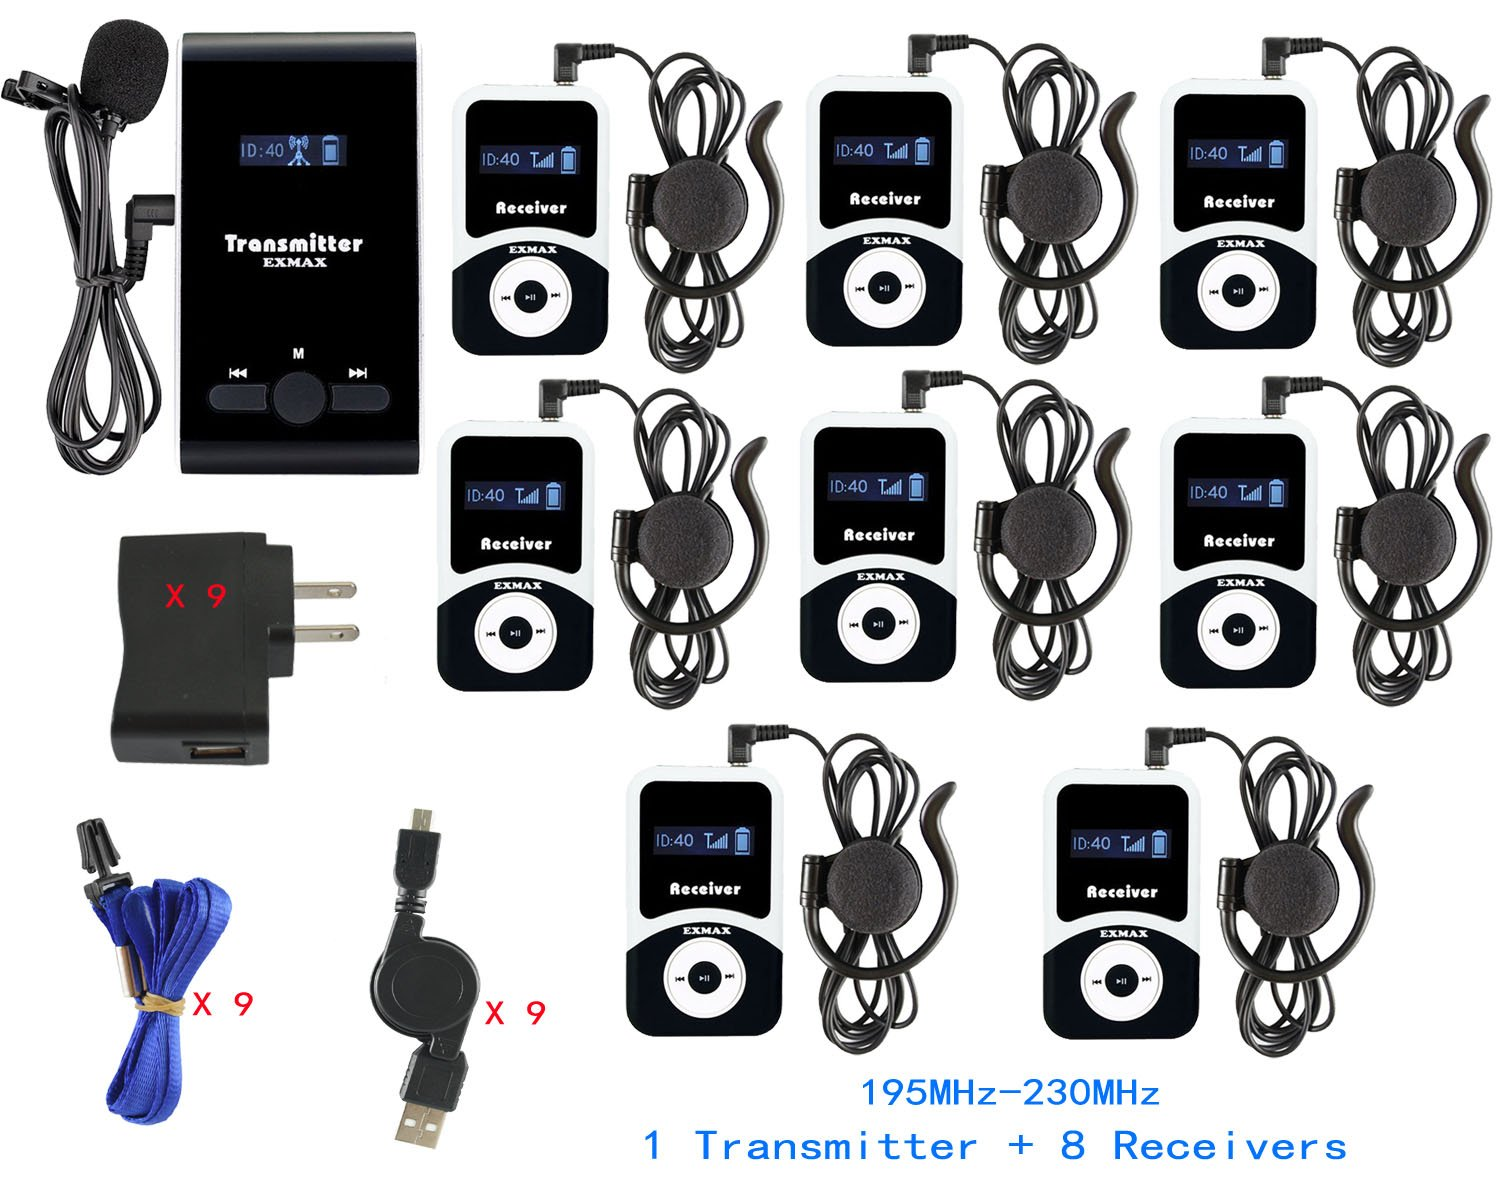 EXMAX ATG-100T 195-230MHz Wireless Tour Guide Monitoring System Microphone Earphone Headset for Church Translate Teaching Conference Travel Square Dance(1 Transmitter 8 Receivers)